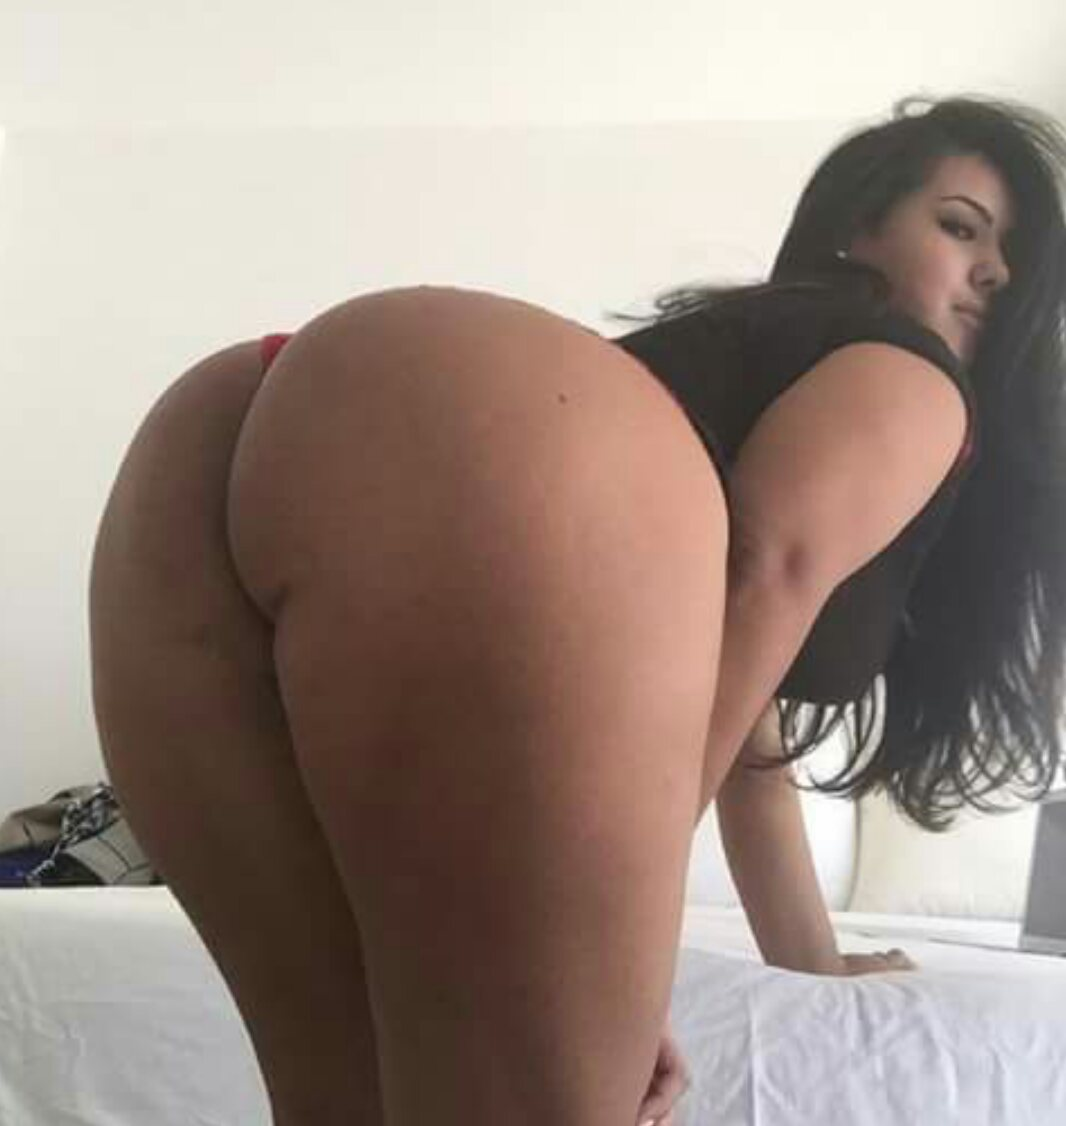 phat ass and tits